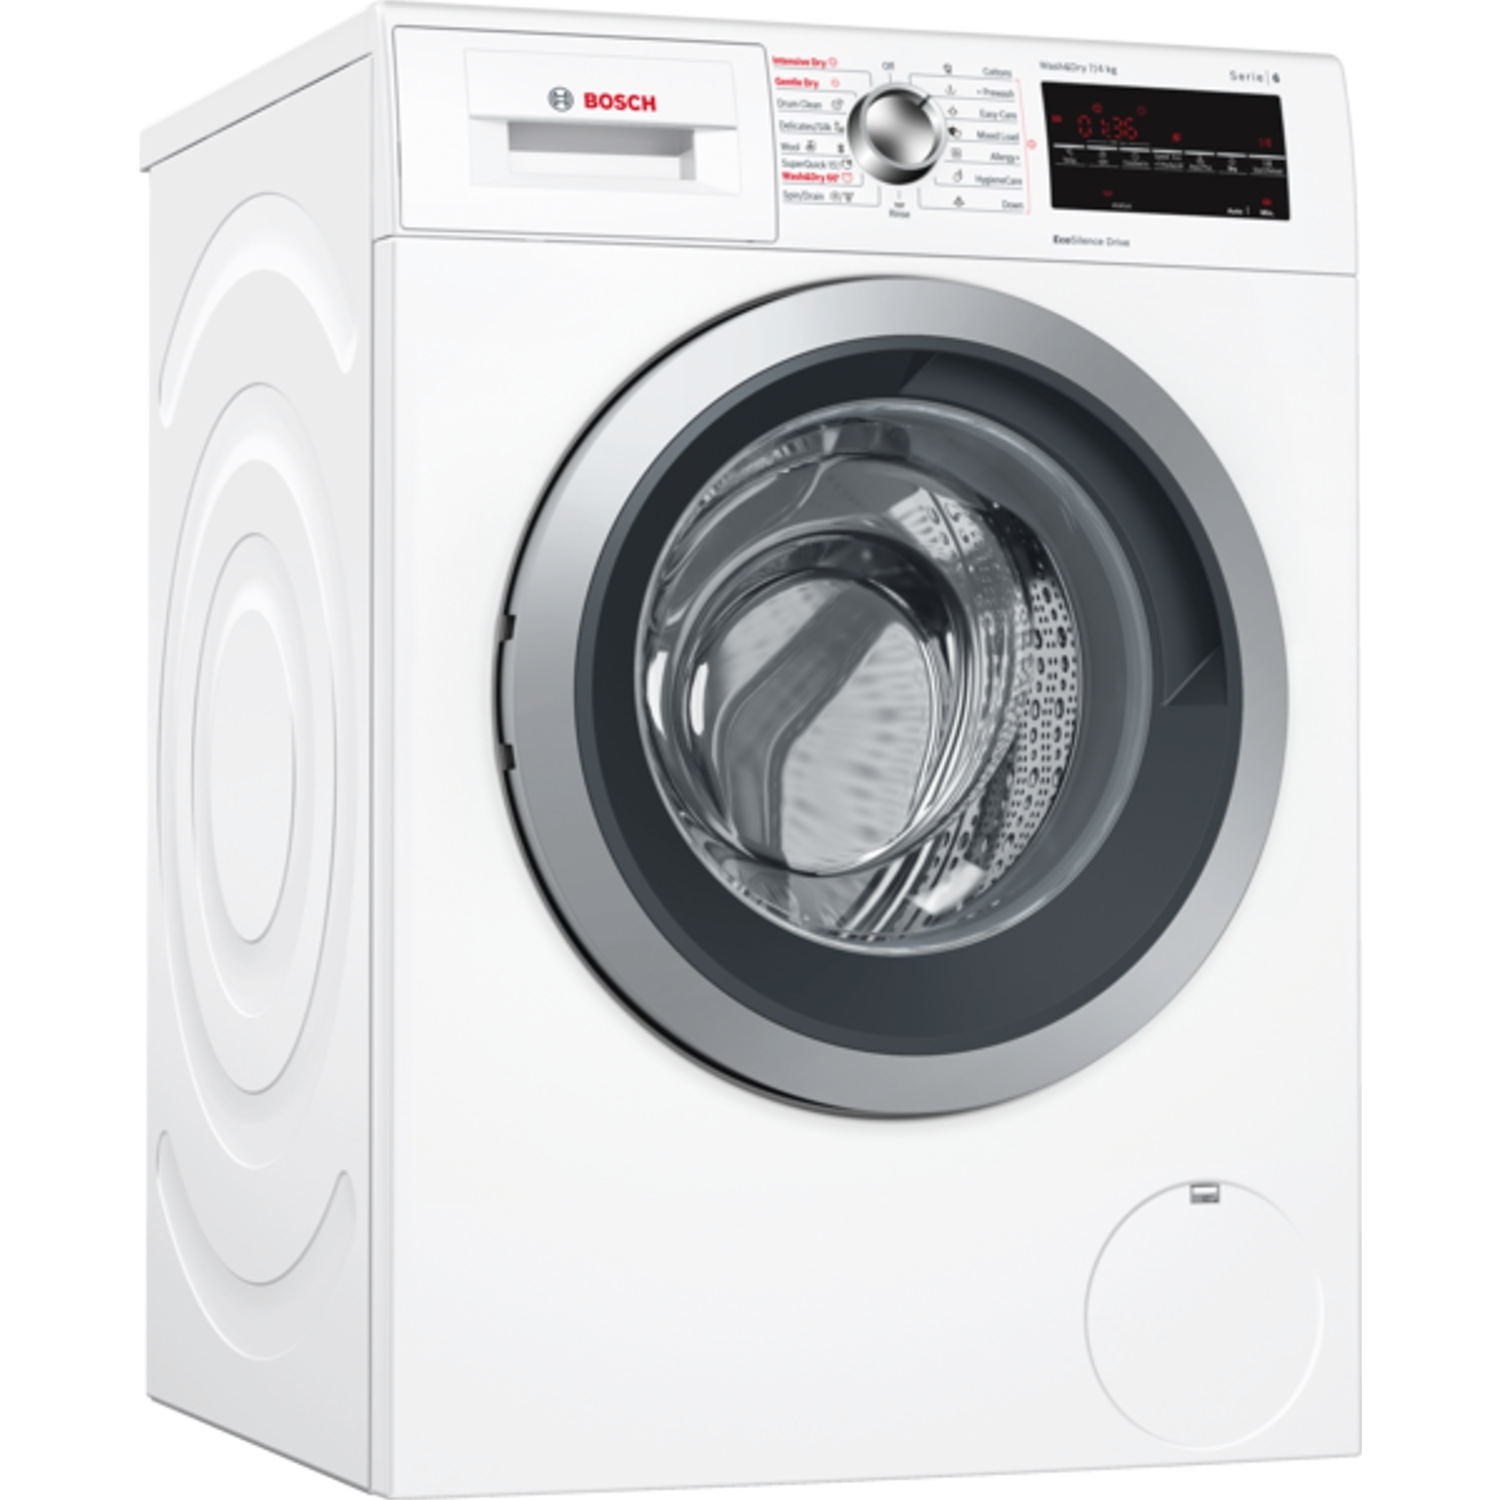 Bosch 7kg/4kg 1500 Spin Washer Dryer - White - A Rated - 0